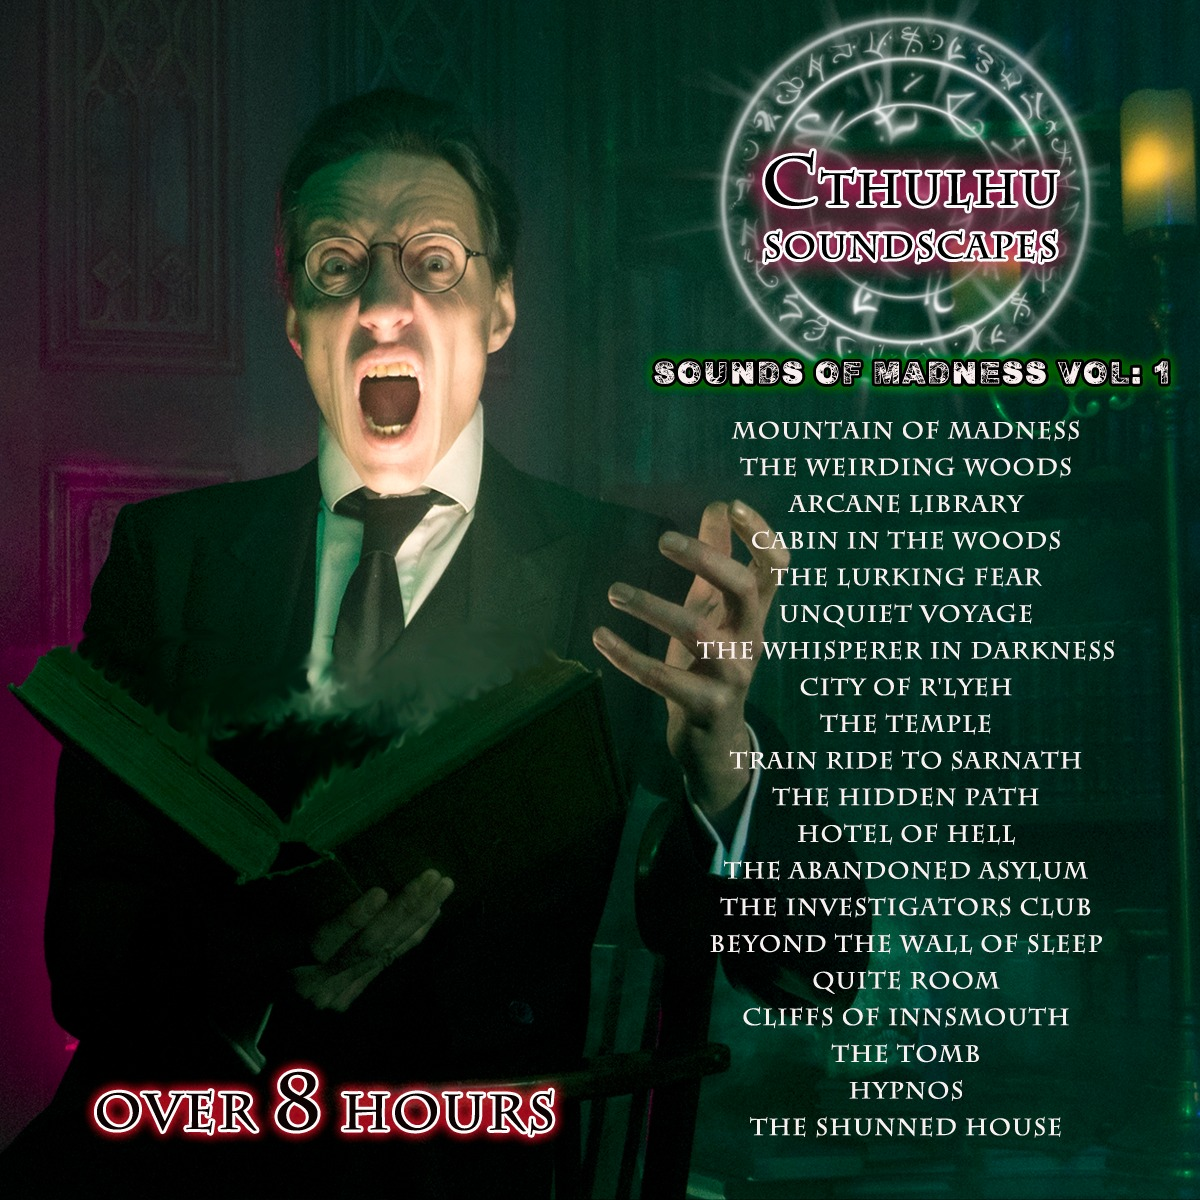 Cthulhu Soundscapes: Sounds of Madness: Vol One